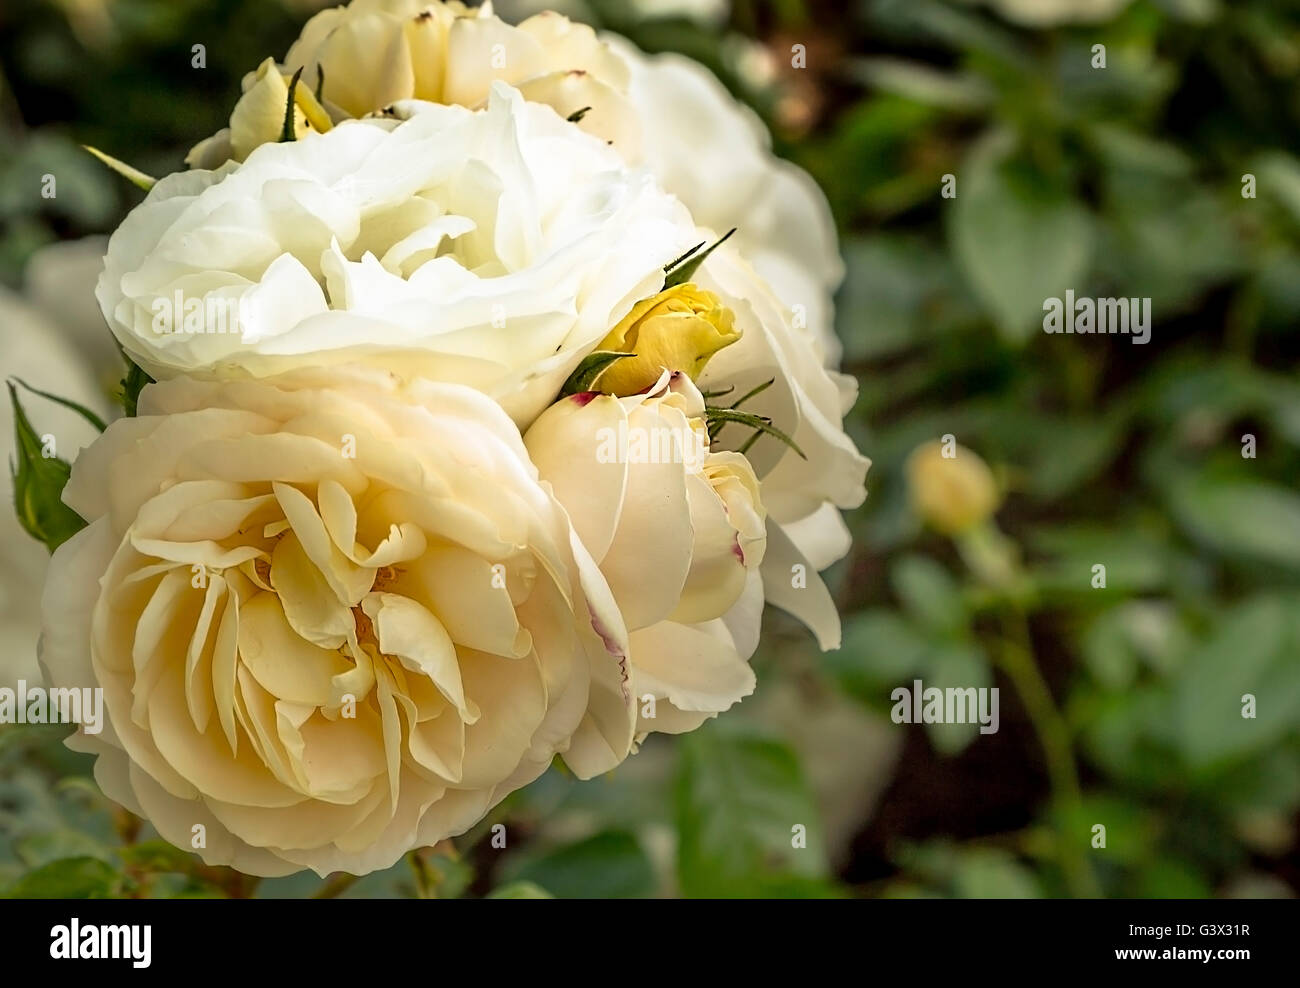 Pale yellow rose - Stock Image